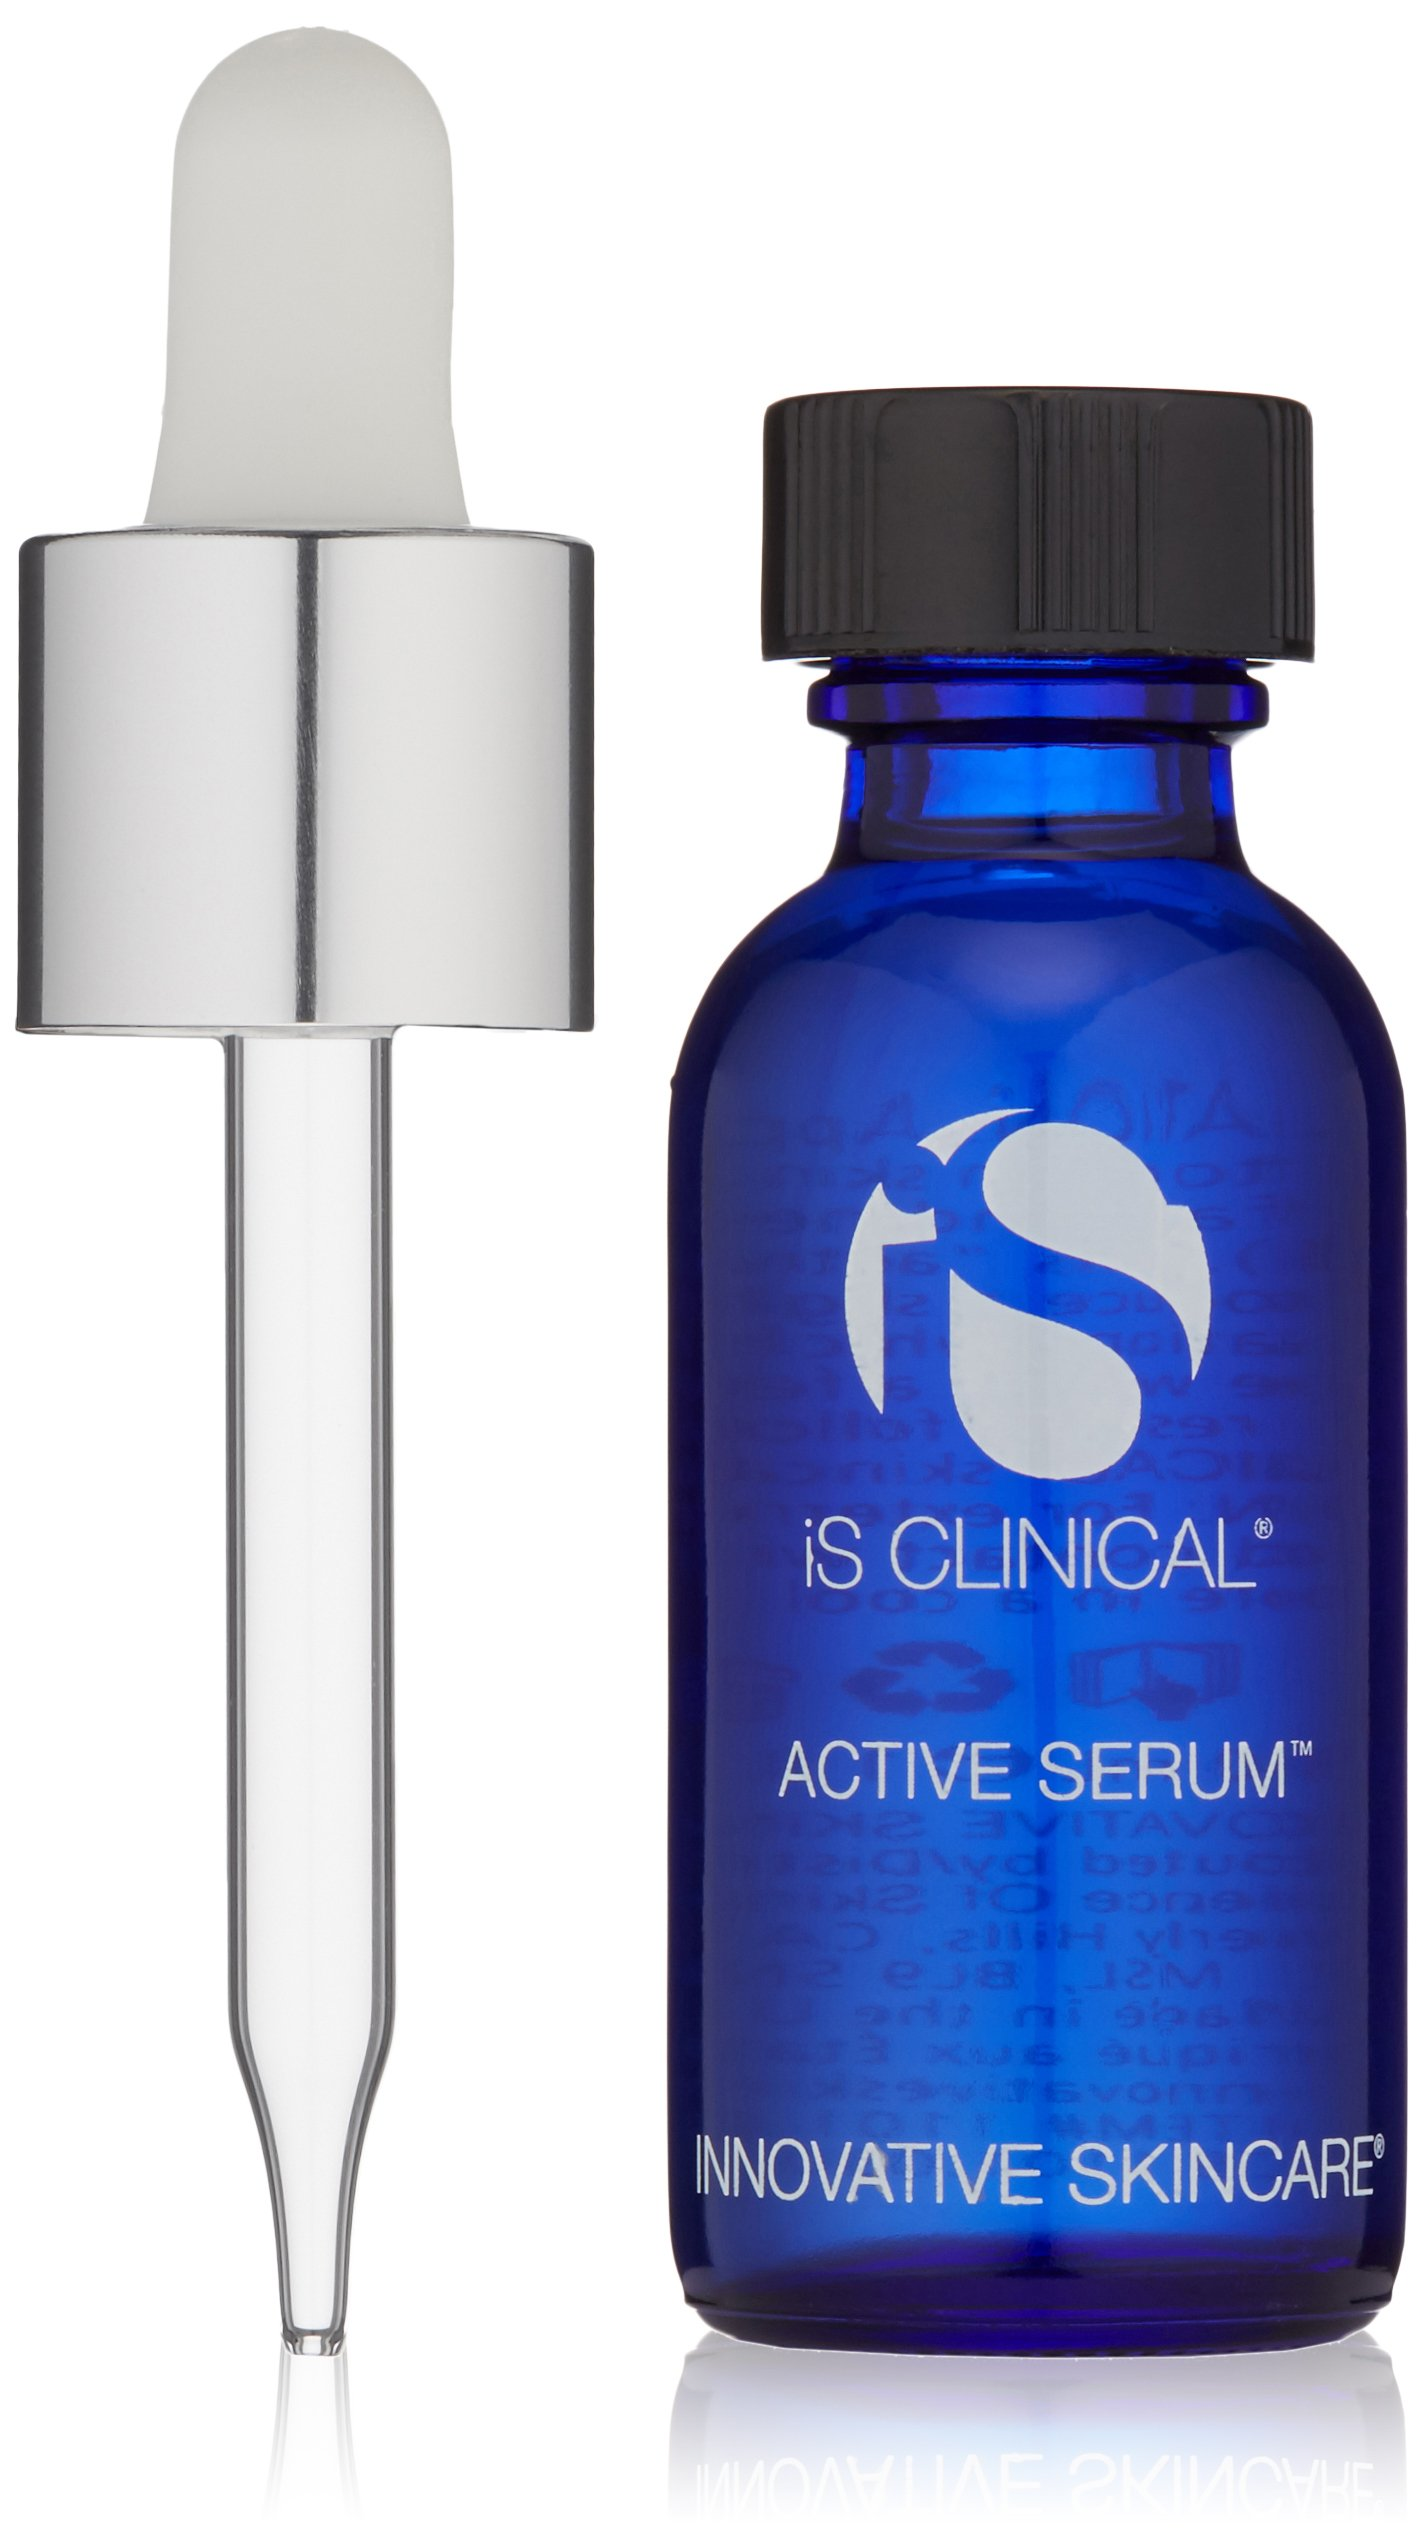 iS Clinical Active Serum 1 oz by iS CLINICAL